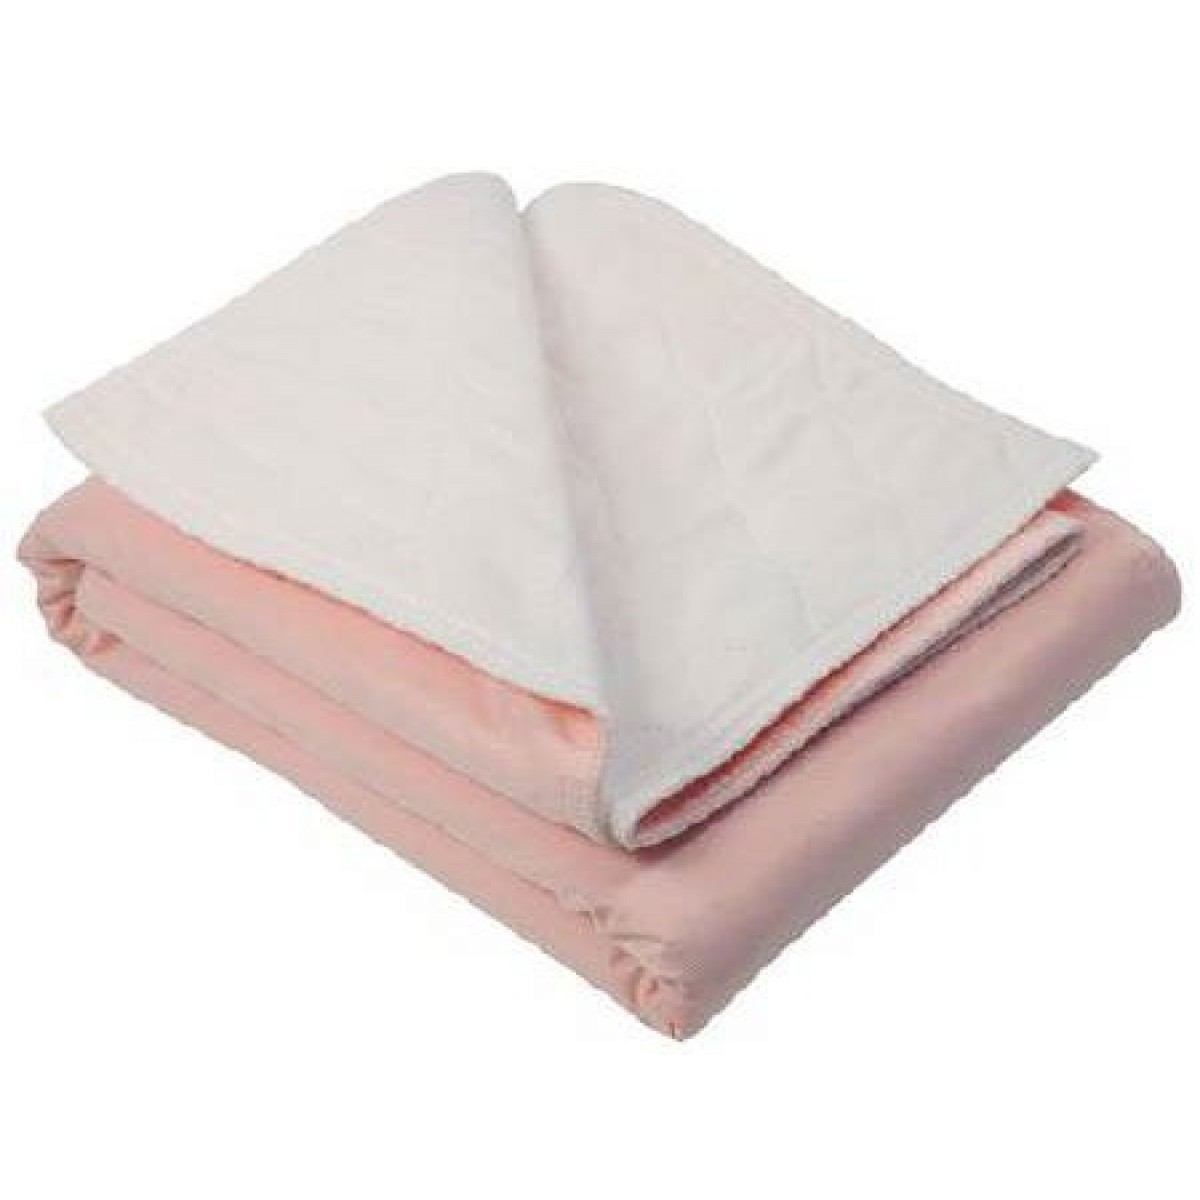 Beck S Classic Reusable Washable Bedpad On Sale With